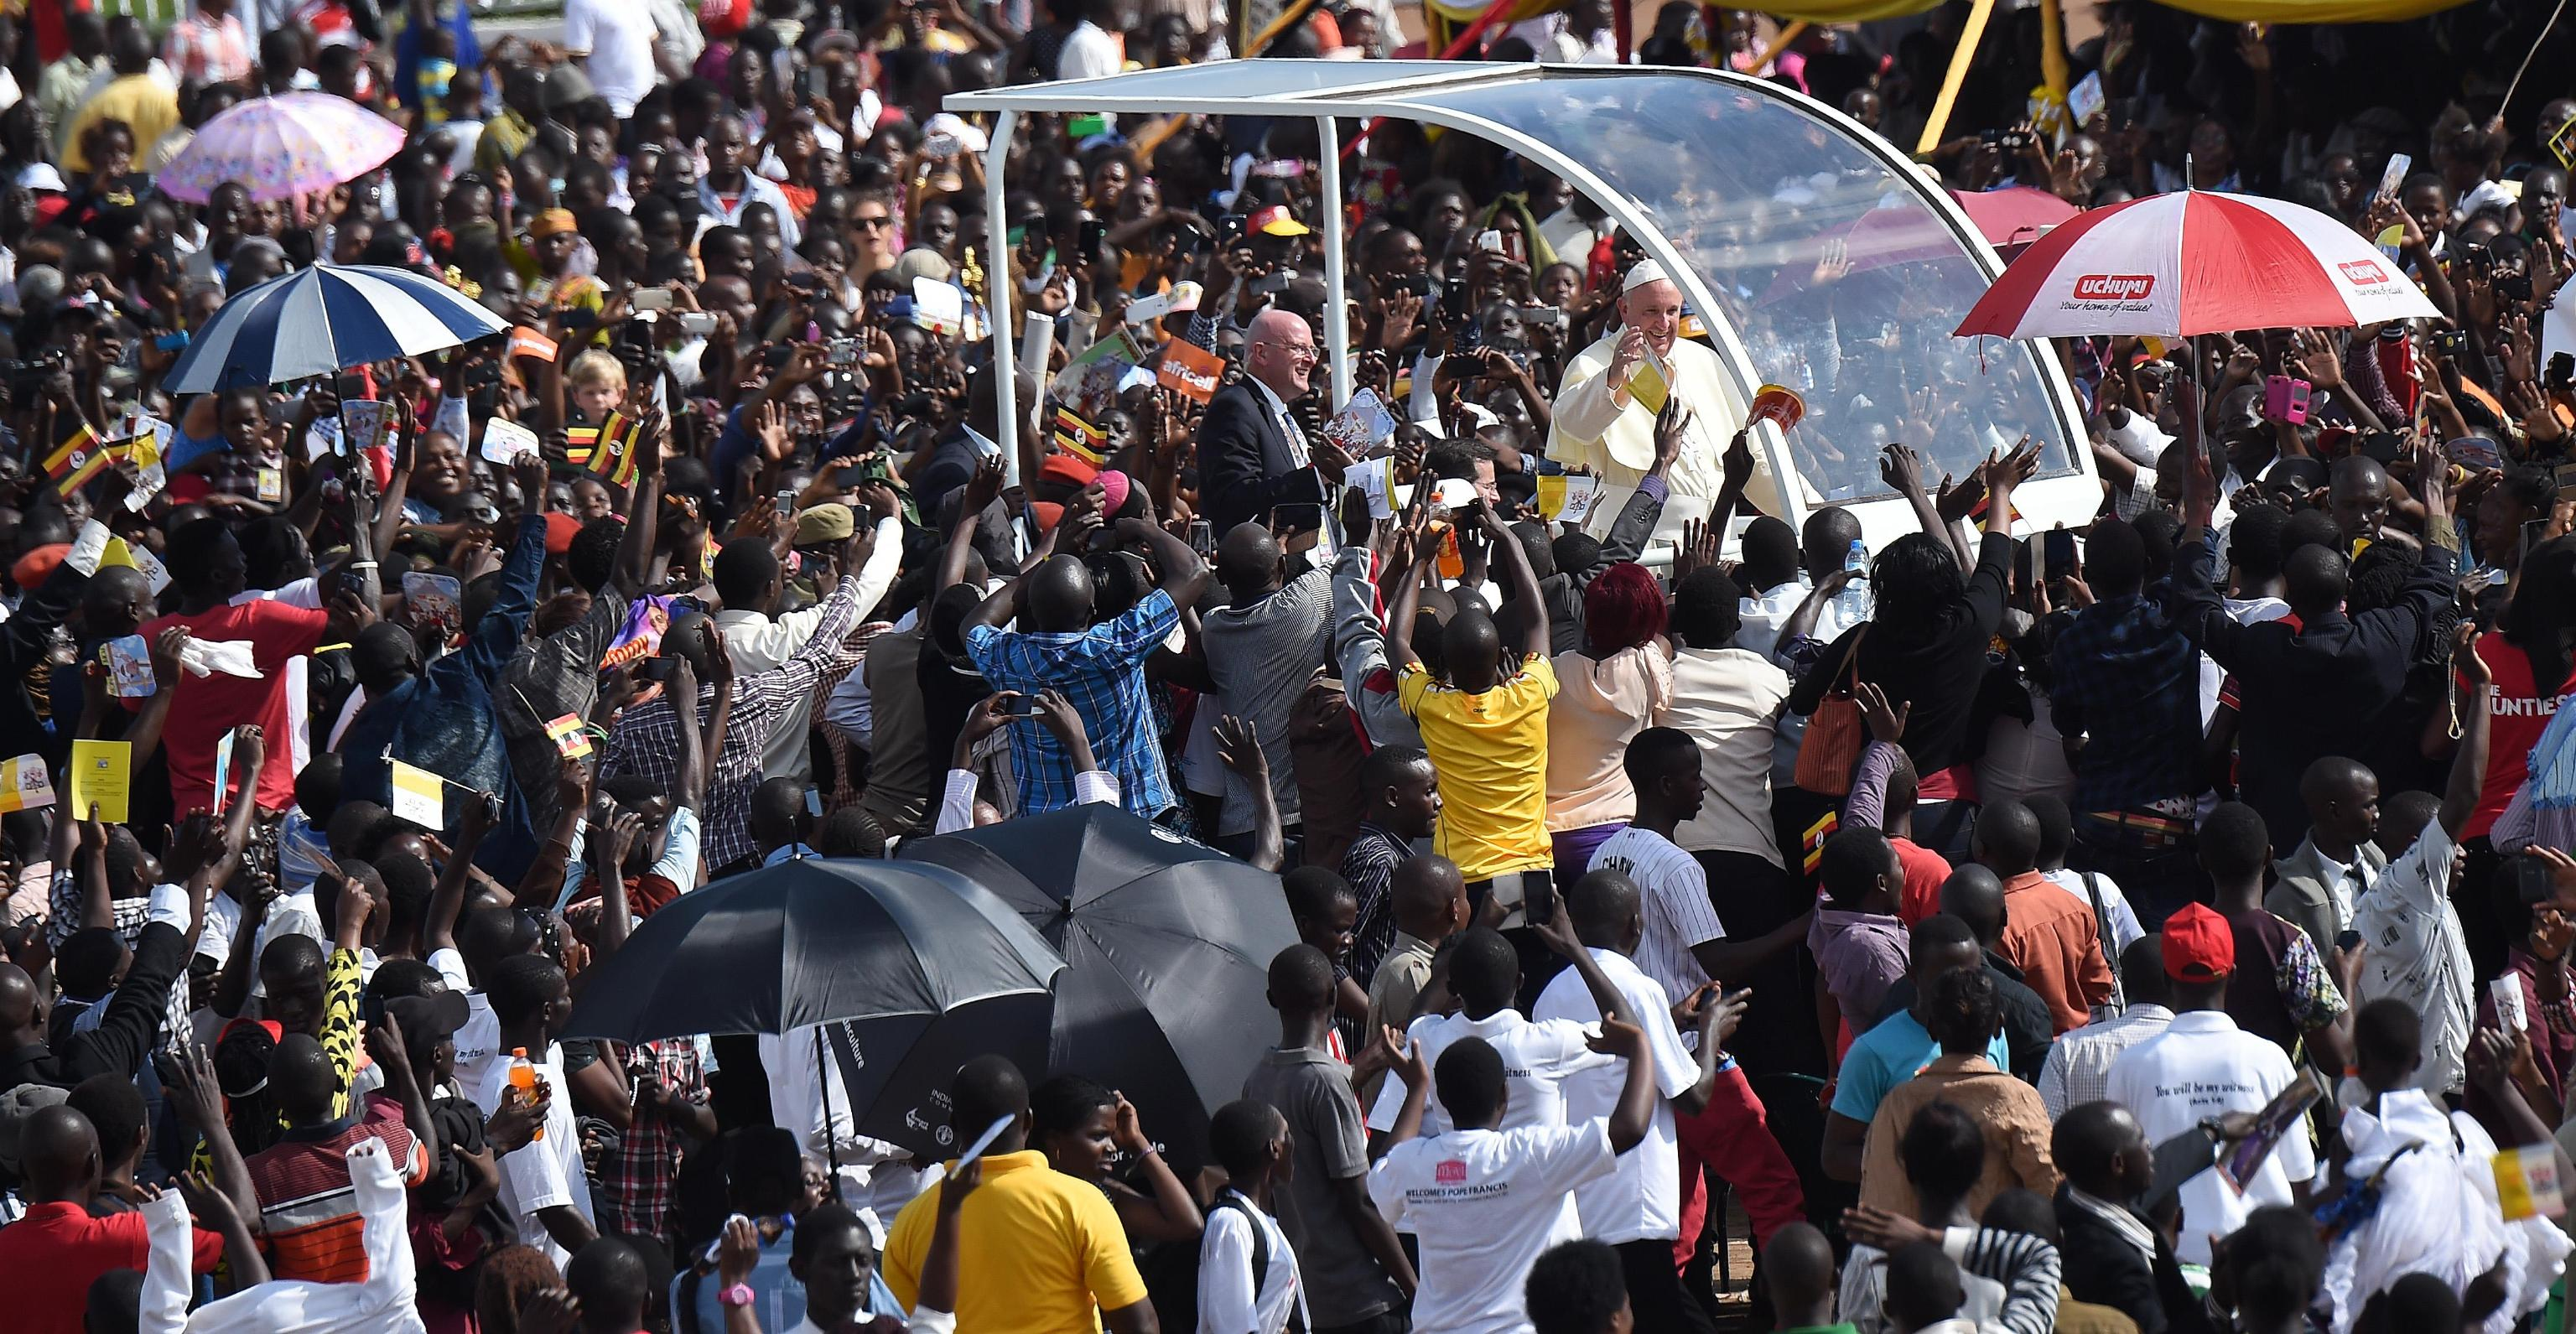 Pope Francis cheers the crowd from the popemobile at his arrival at the meeting with young people at the Kololo airstrip in Kampala